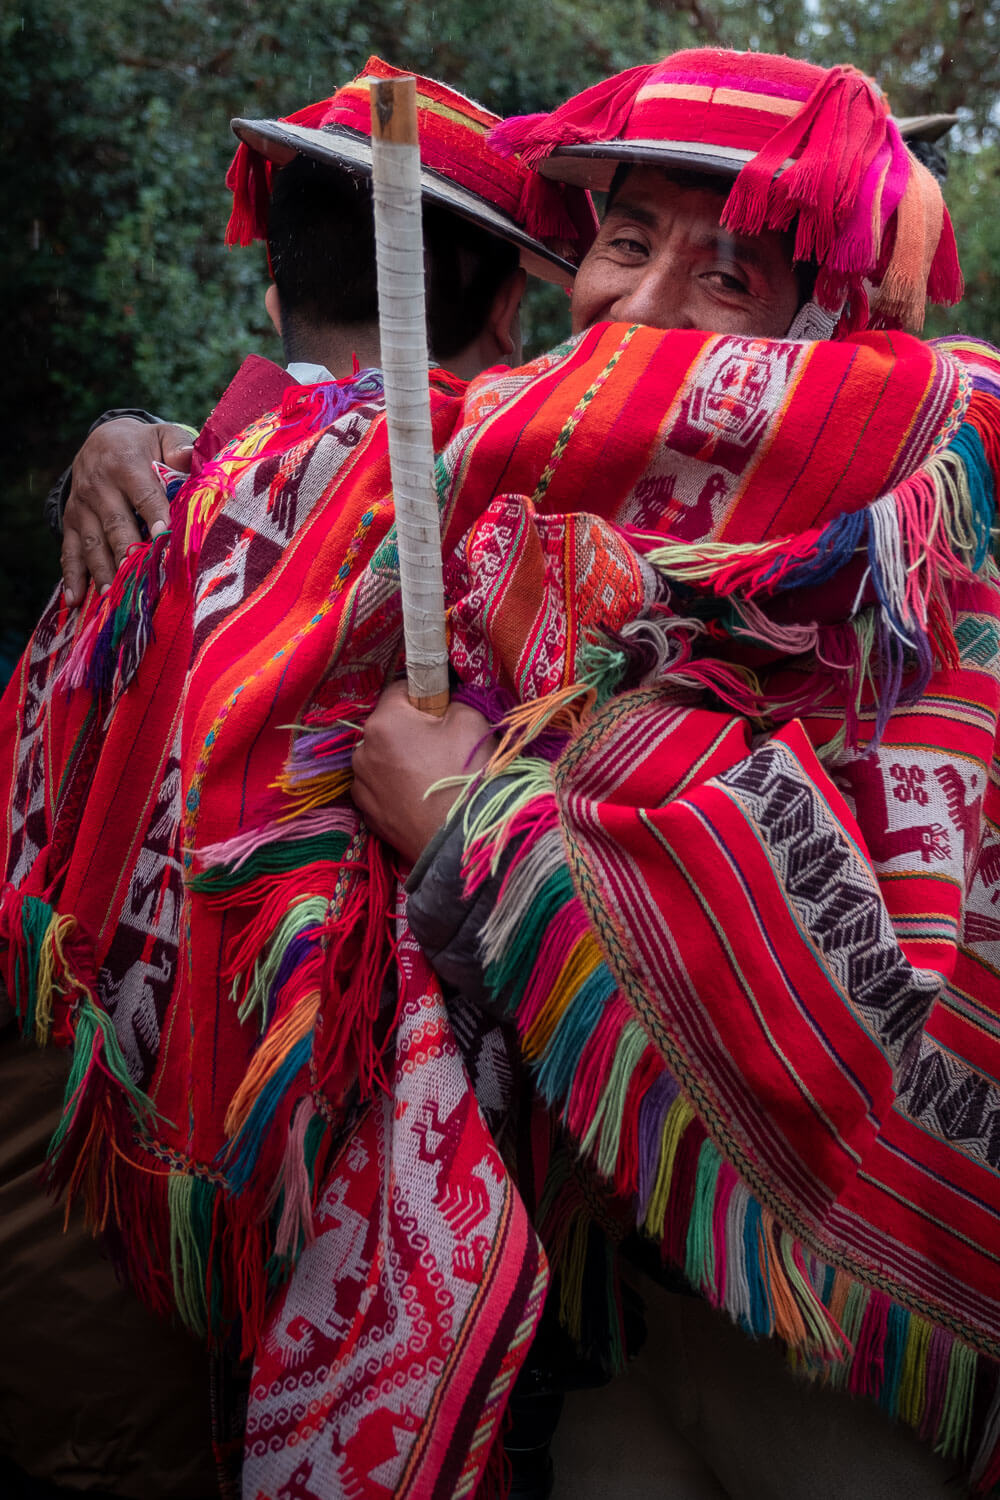 """Saying goodbye to the weavers of Patacancha, The Sacred Valley, Peru. Travel photography and guide by © Natasha Lequepeys for """"And Then I Met Yoko"""". #peru #sacredvalley #patacancha #photoblog #travelblog #travelphotography #portraitphotography #travelitinerary #fujifilm #weaving #tradition #culture #people #andes #village #weavingdemonstration #cusco #ollantaytambo #travel #travelperu"""